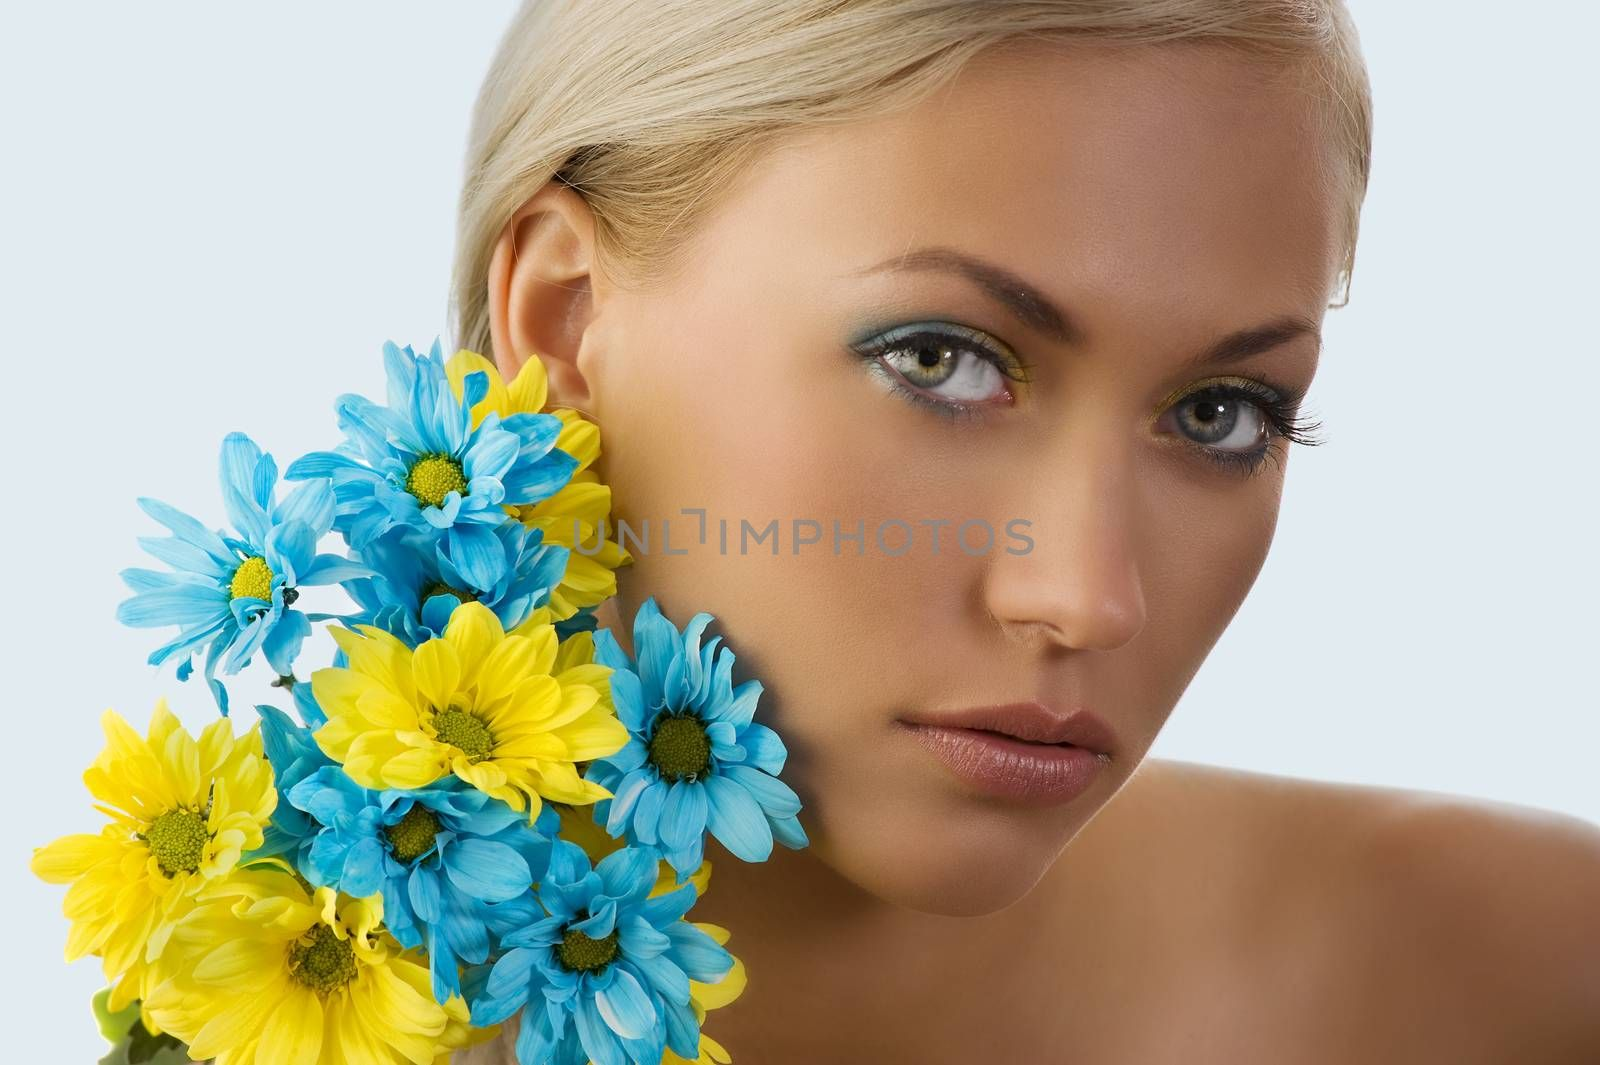 beauty portrait of pretty young blond girl with blue and yellow daisy near her face